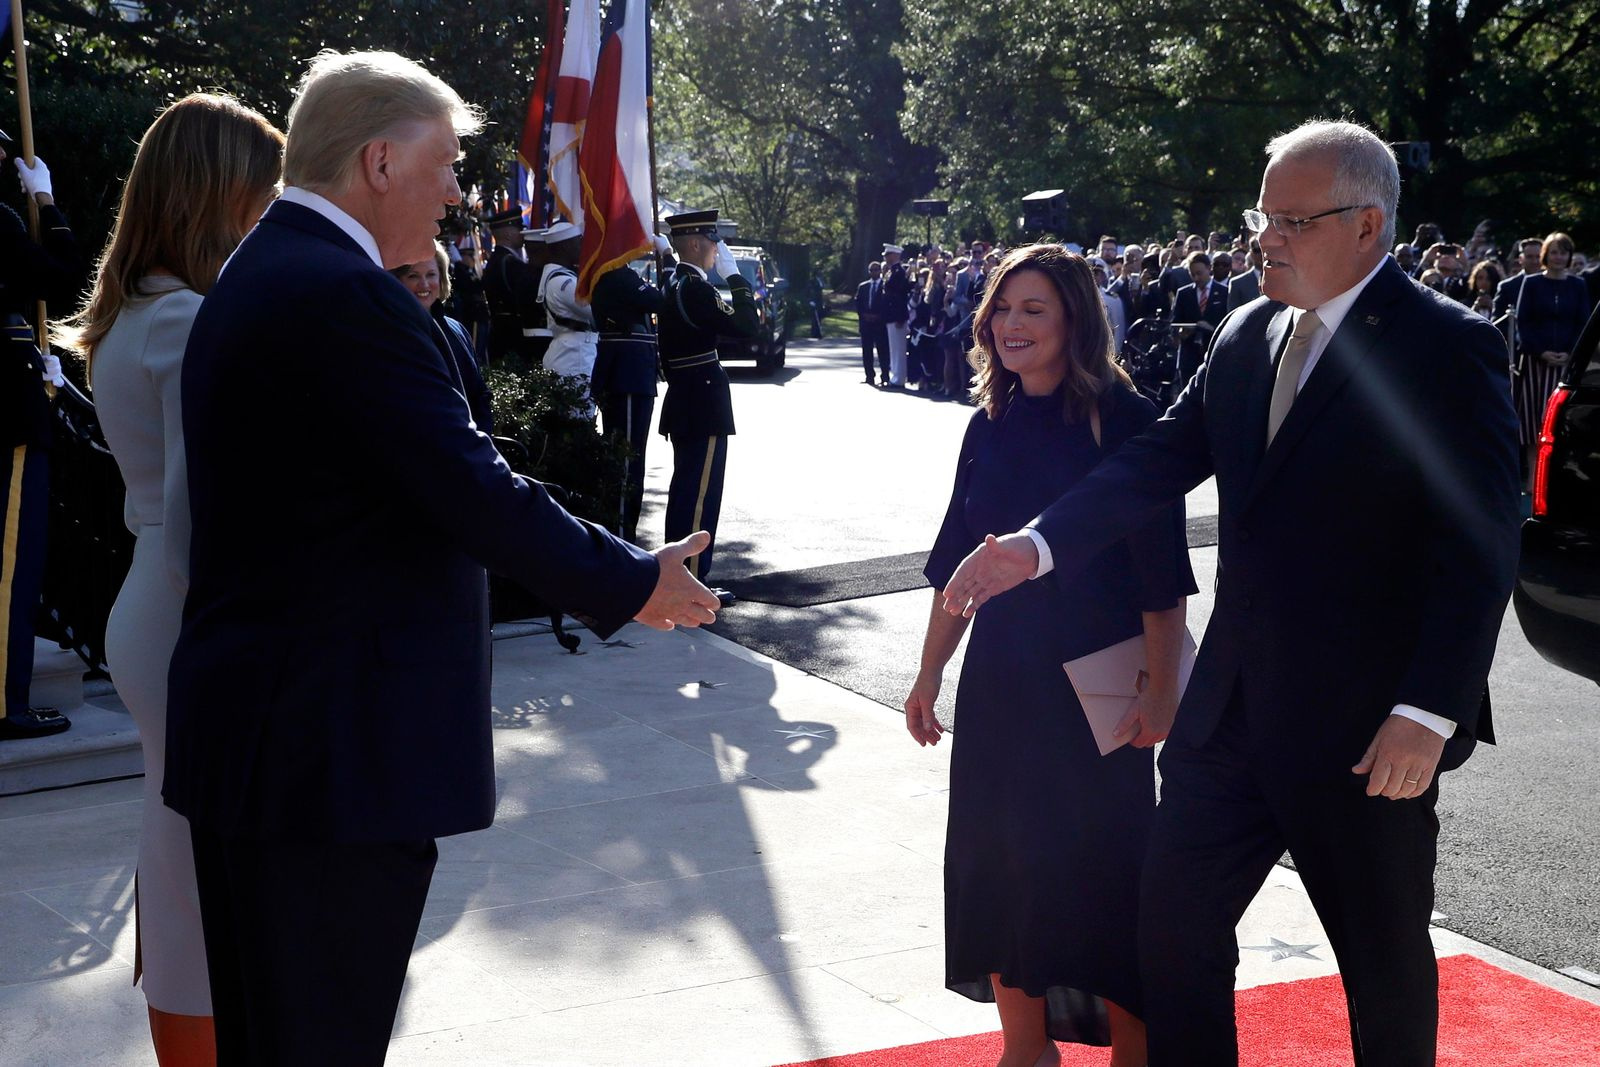 President Donald Trump and first lady Melania Trump welcome Australian Prime Minister Scott Morrison and his wife Jenny Morrison during a State Arrival Ceremony on the South Lawn of the White House, Friday, Sept. 20, 2019, Washington. (AP Photo/Evan Vucci)